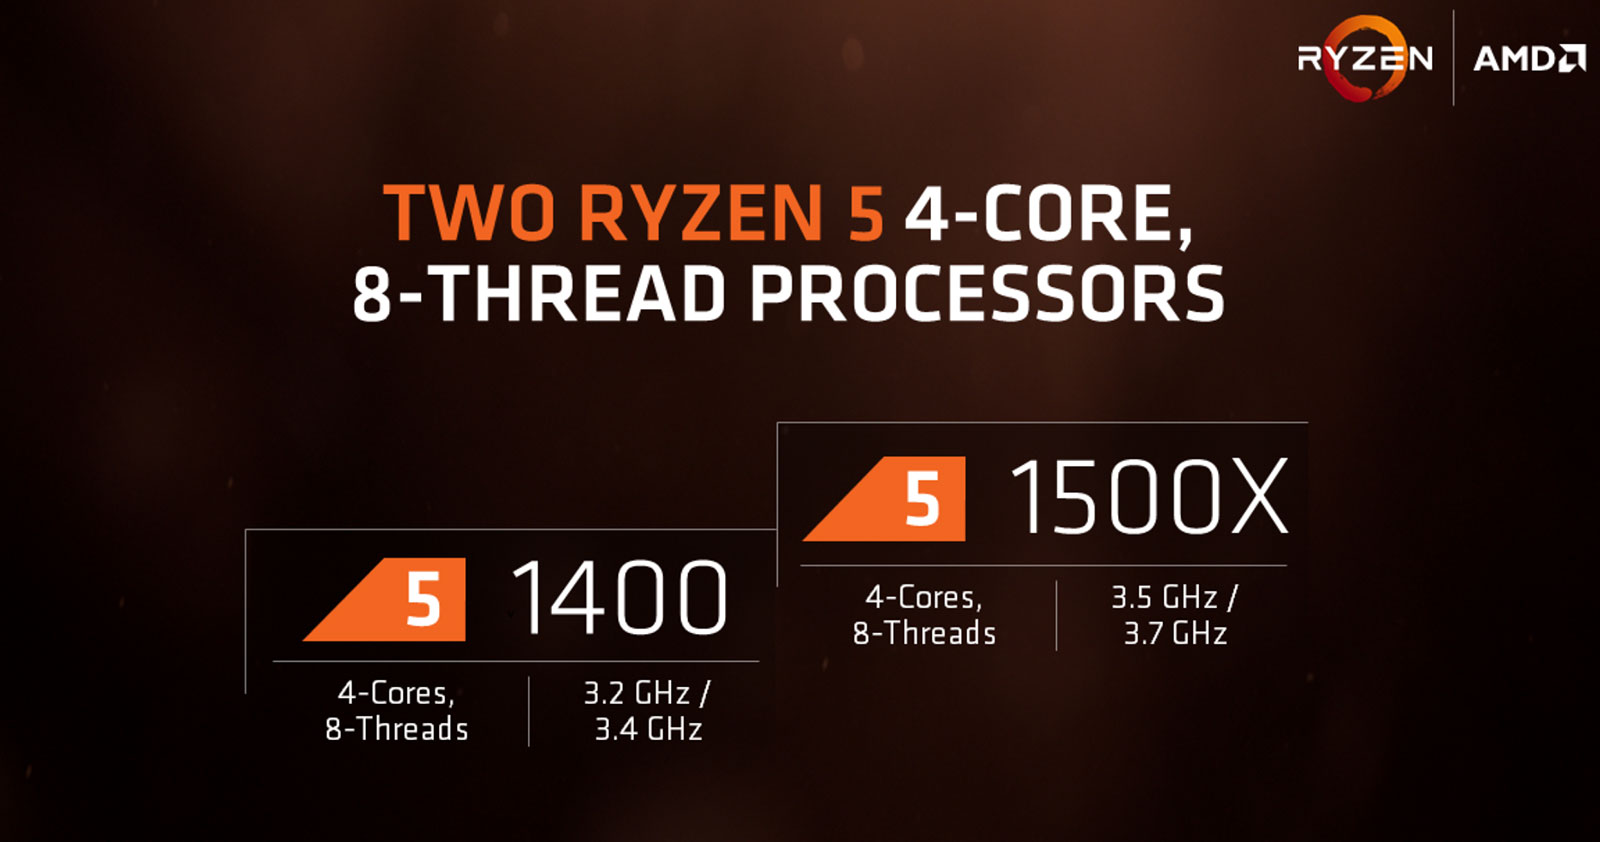 AMD Ryzen 5 1600X And 1500X Processor Review: Affordable Zen Takes On Core i5